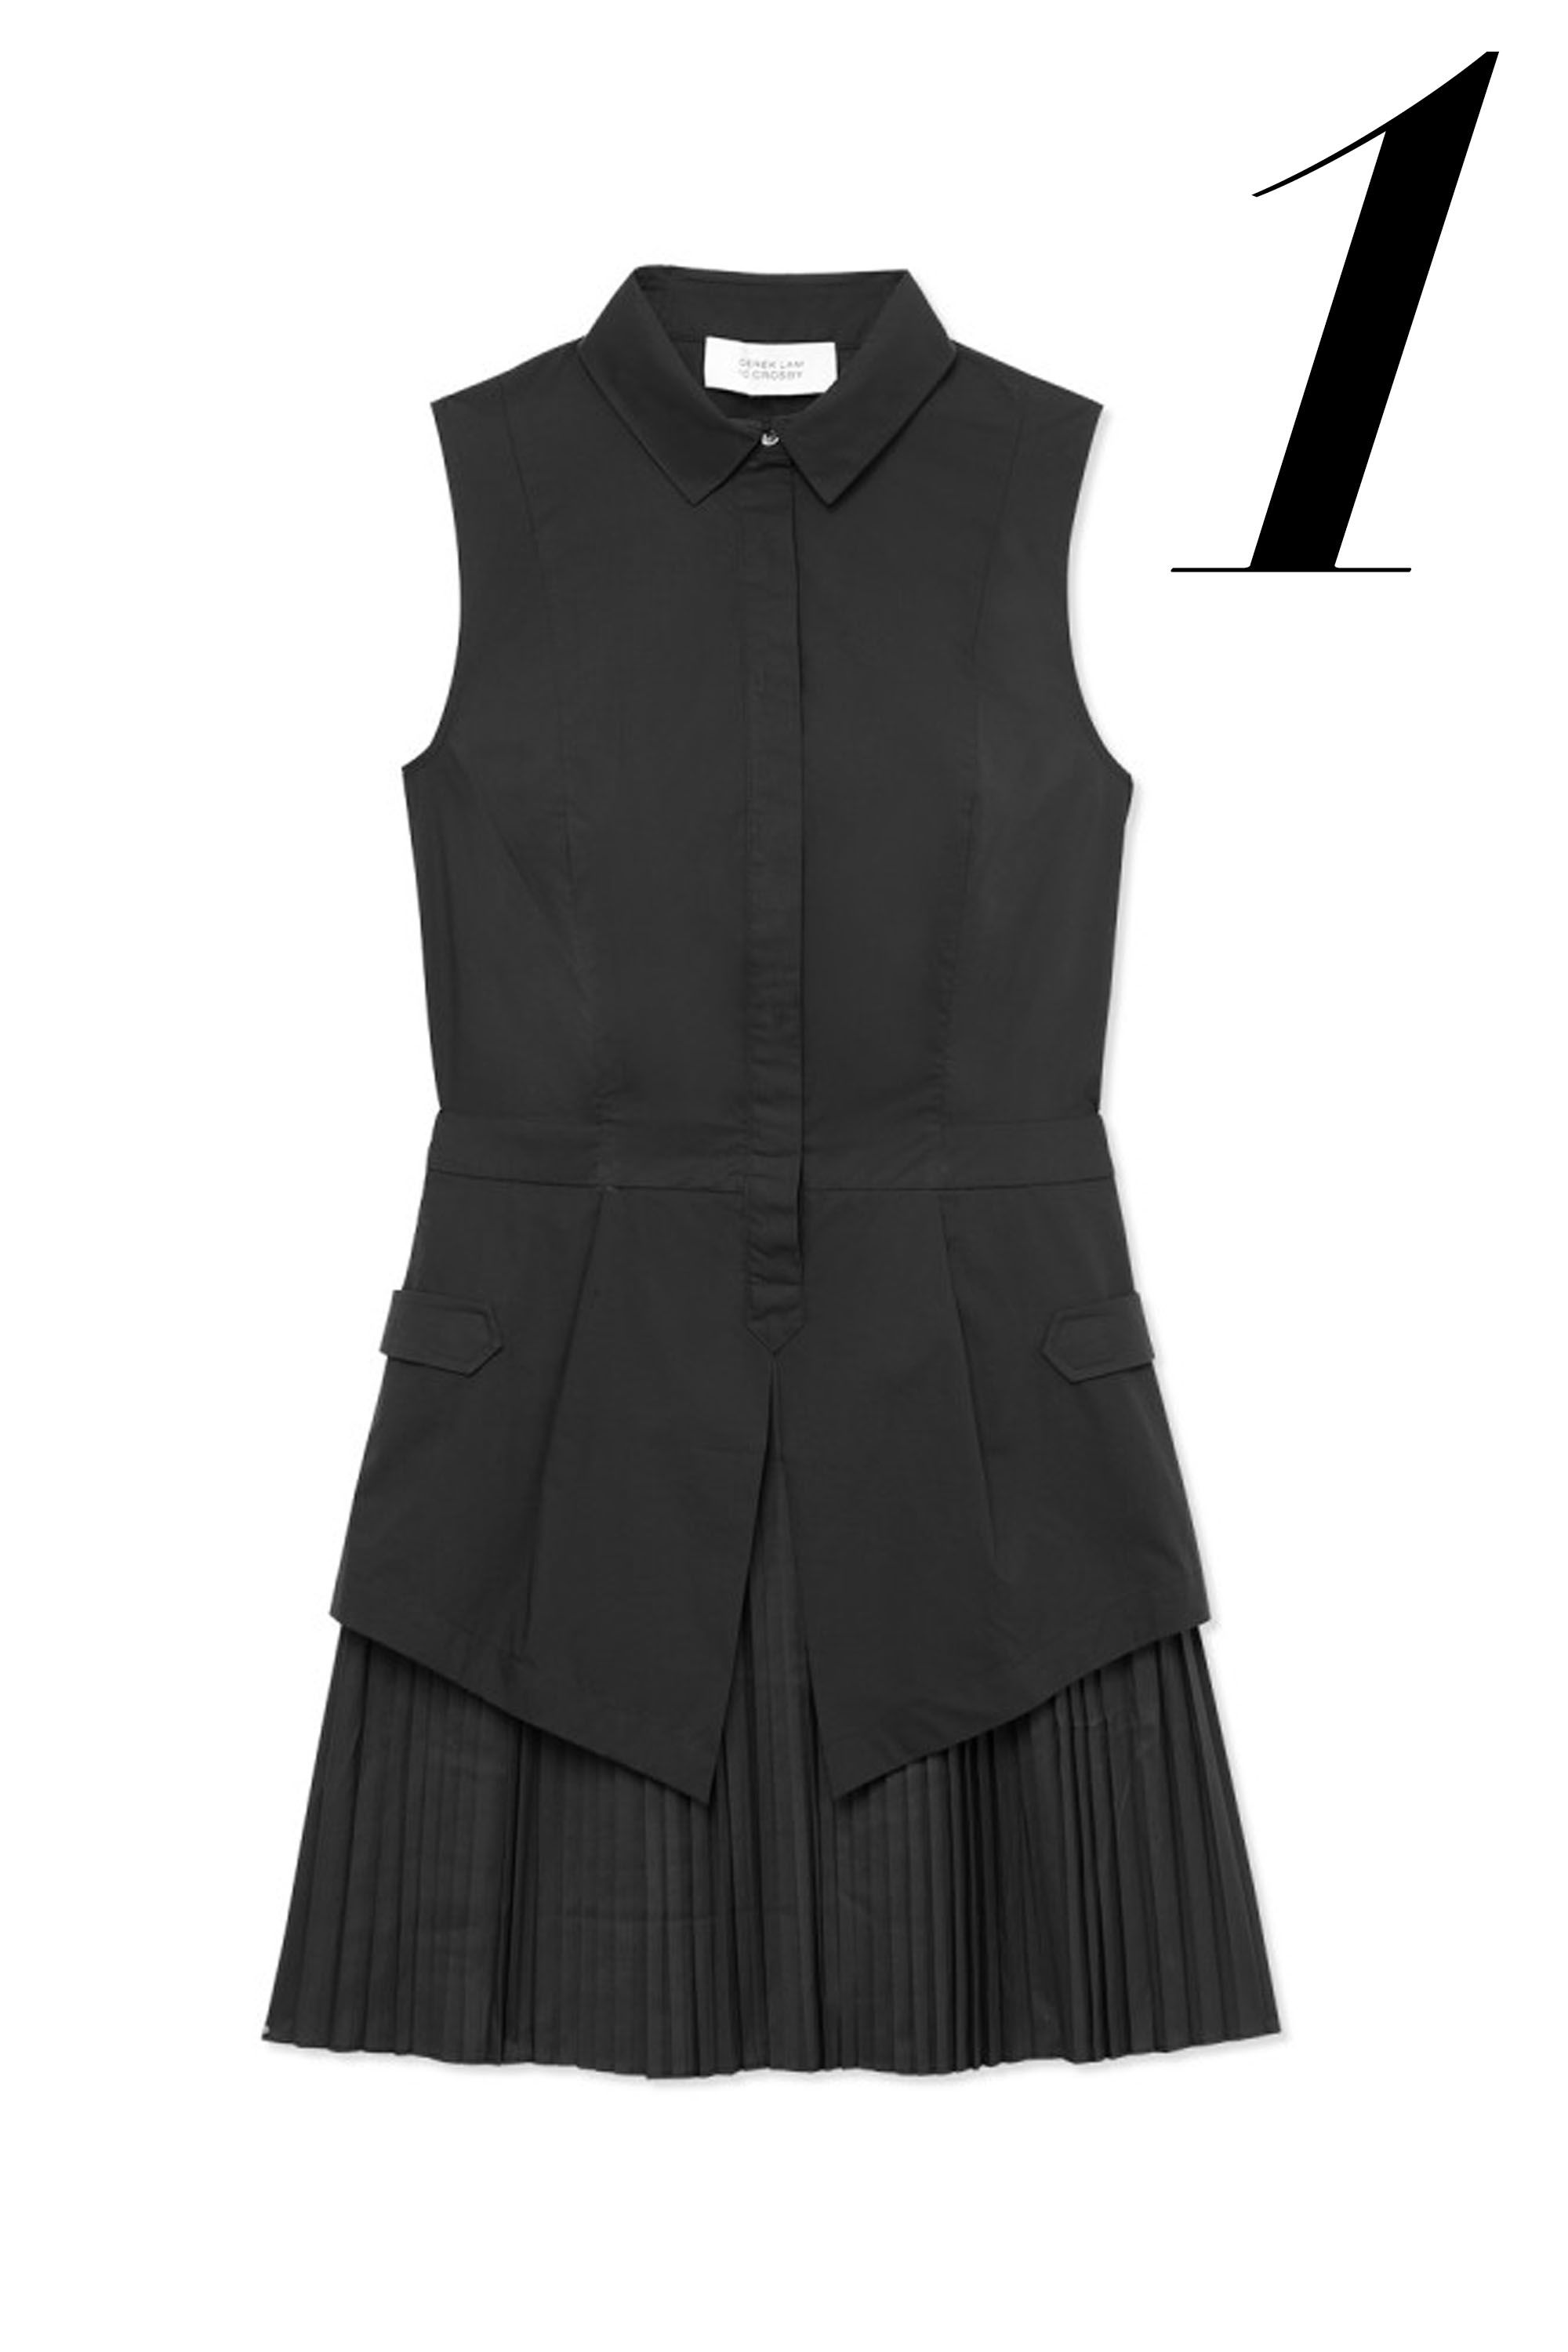 "10 Crosby Derek Lam dress, $395, <a href=""http://shop.harpersbazaar.com/designers/10-crosby-derek-lam/ruffle-shirtdress/"" target=""_blank"">ShopBAZAAR</a>."